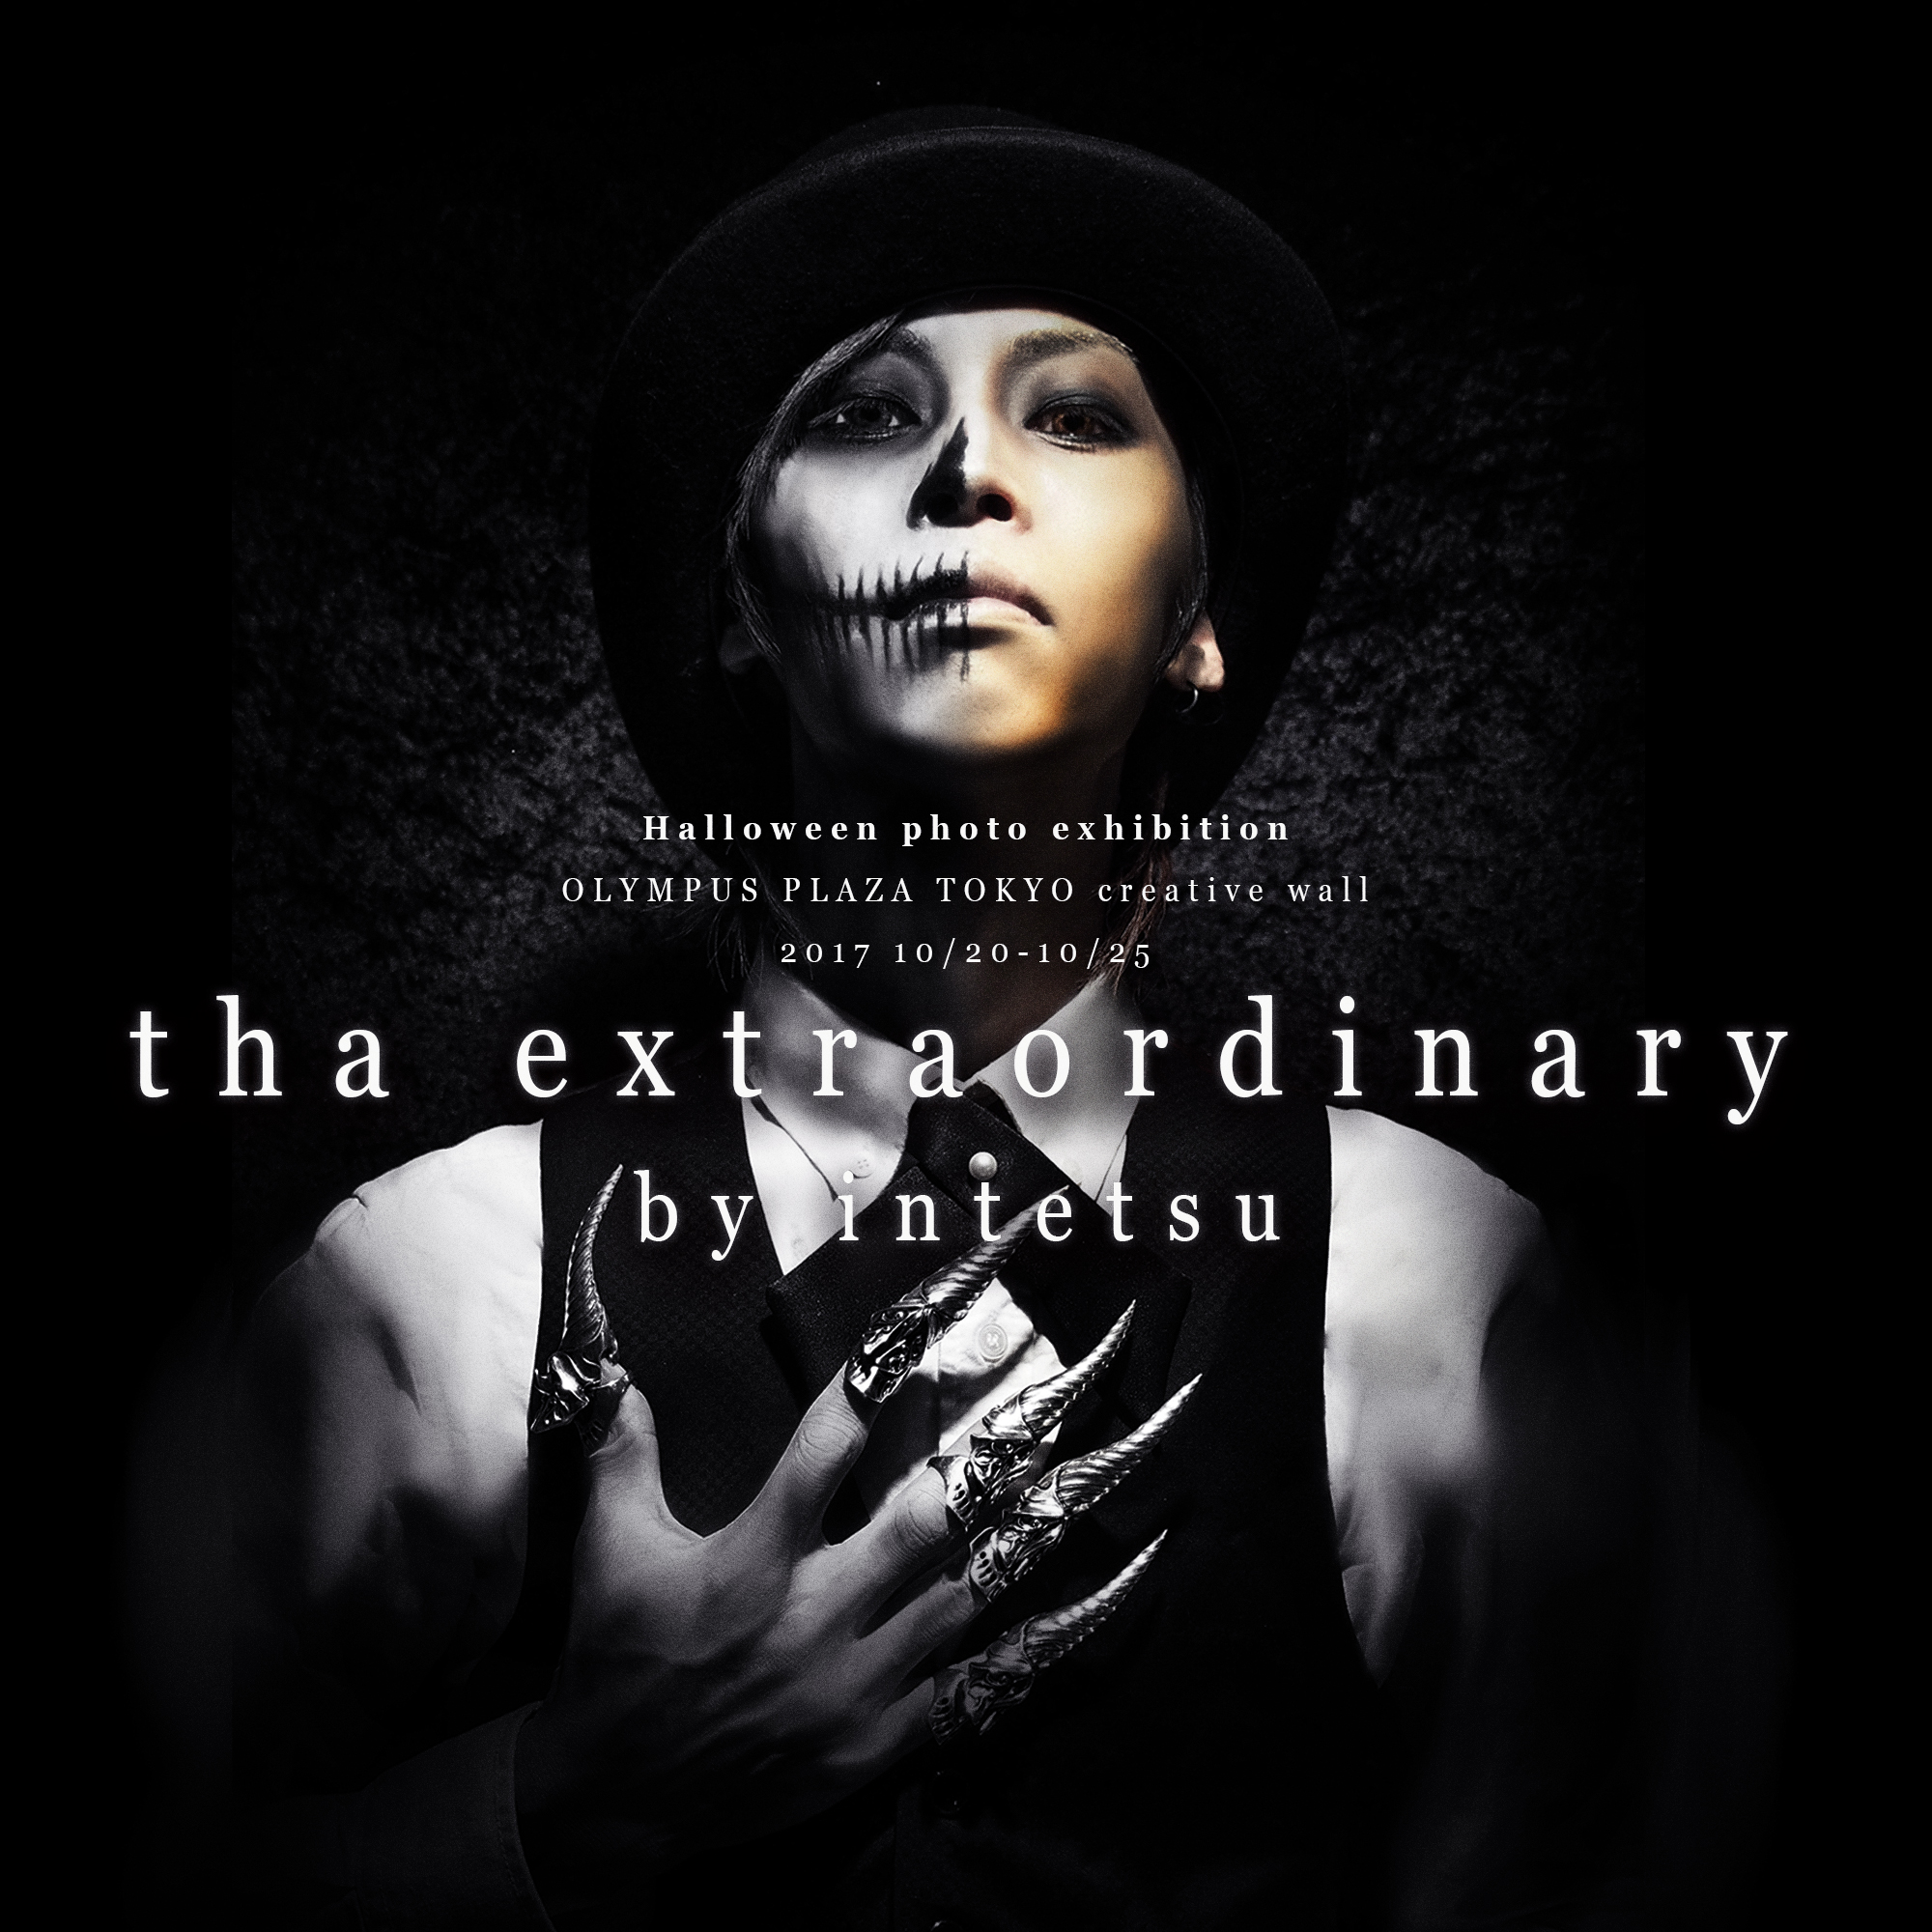 10/20(金)「tha extraordinary」 by intetsu